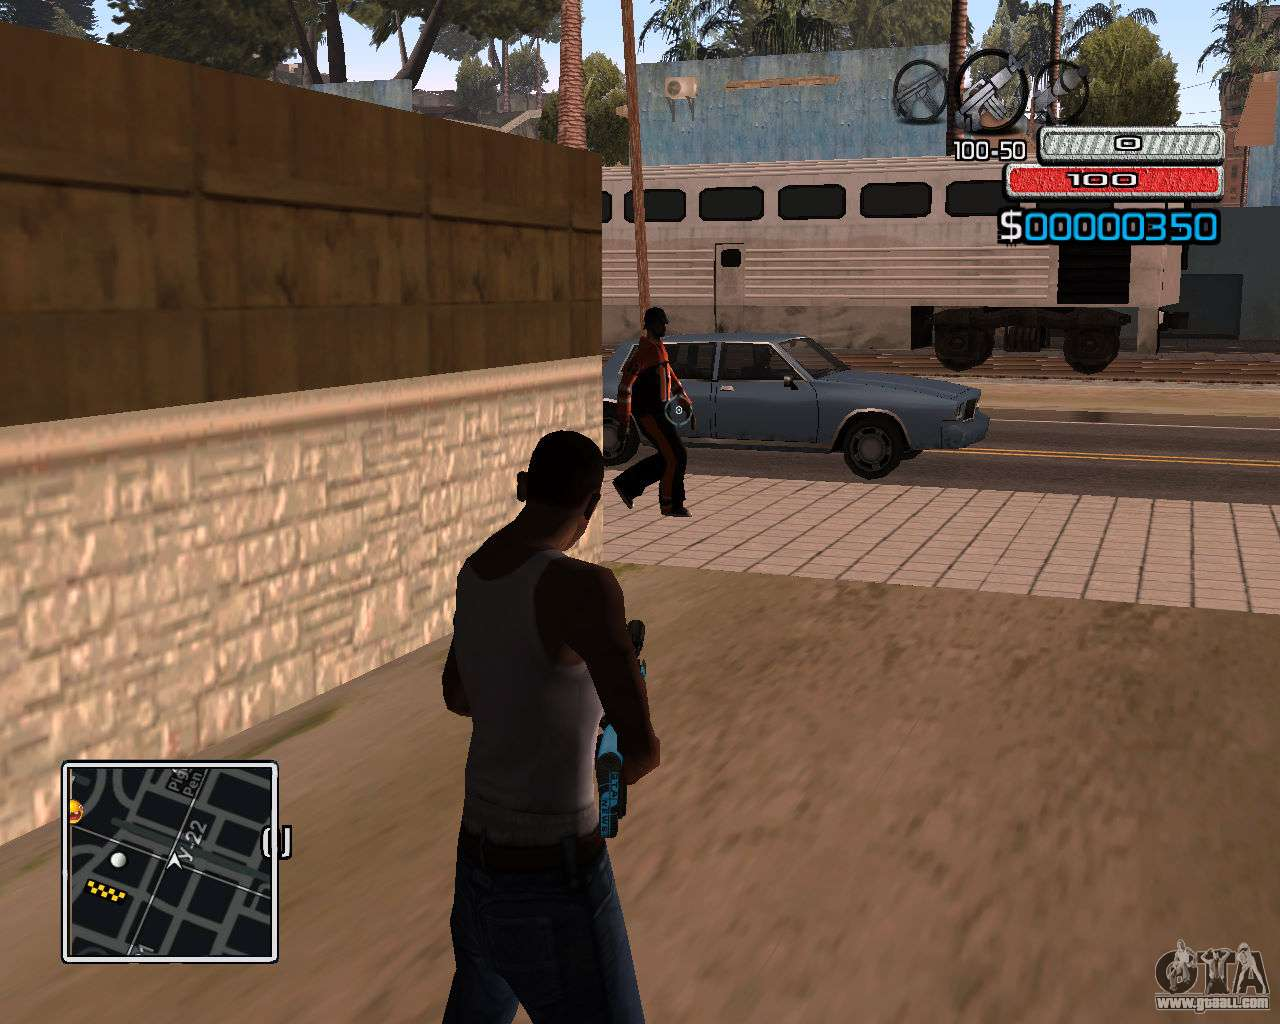 Hud by wh skyline for gta san andreas second screenshot